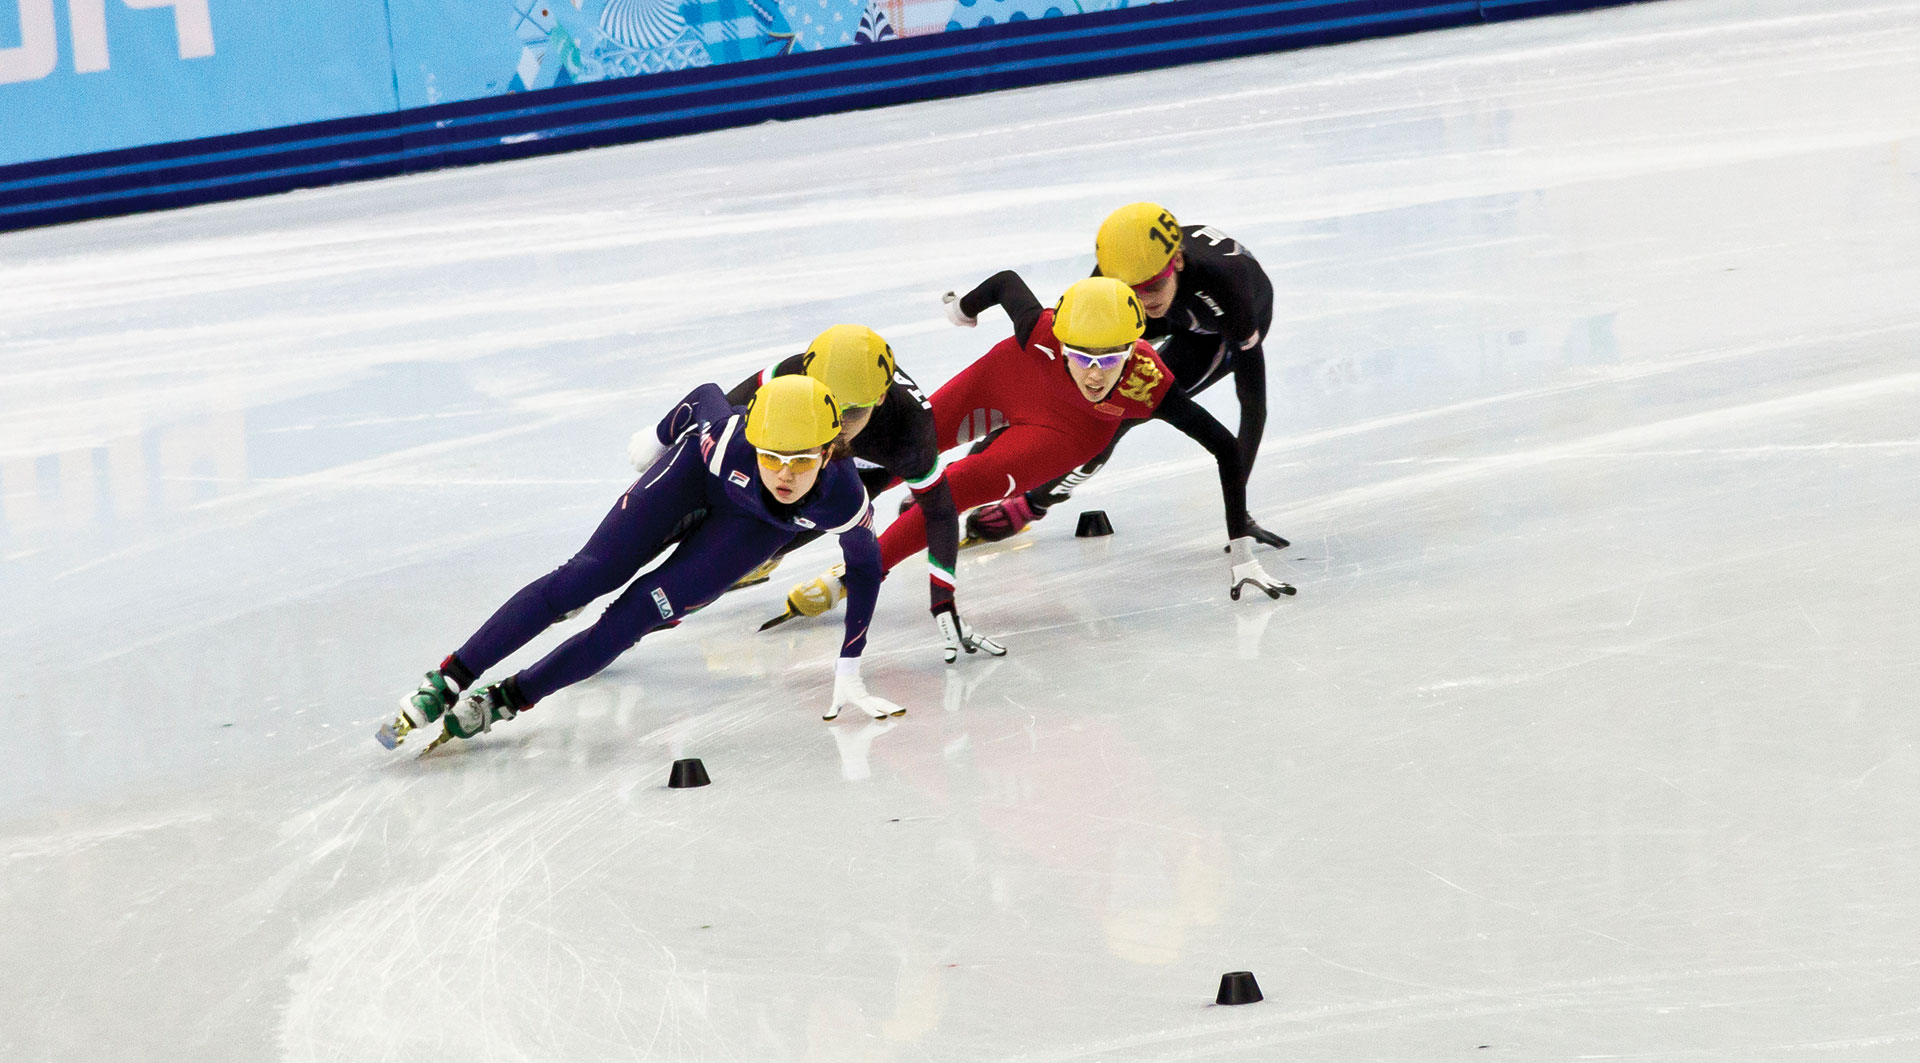 winter games travel packages and tours